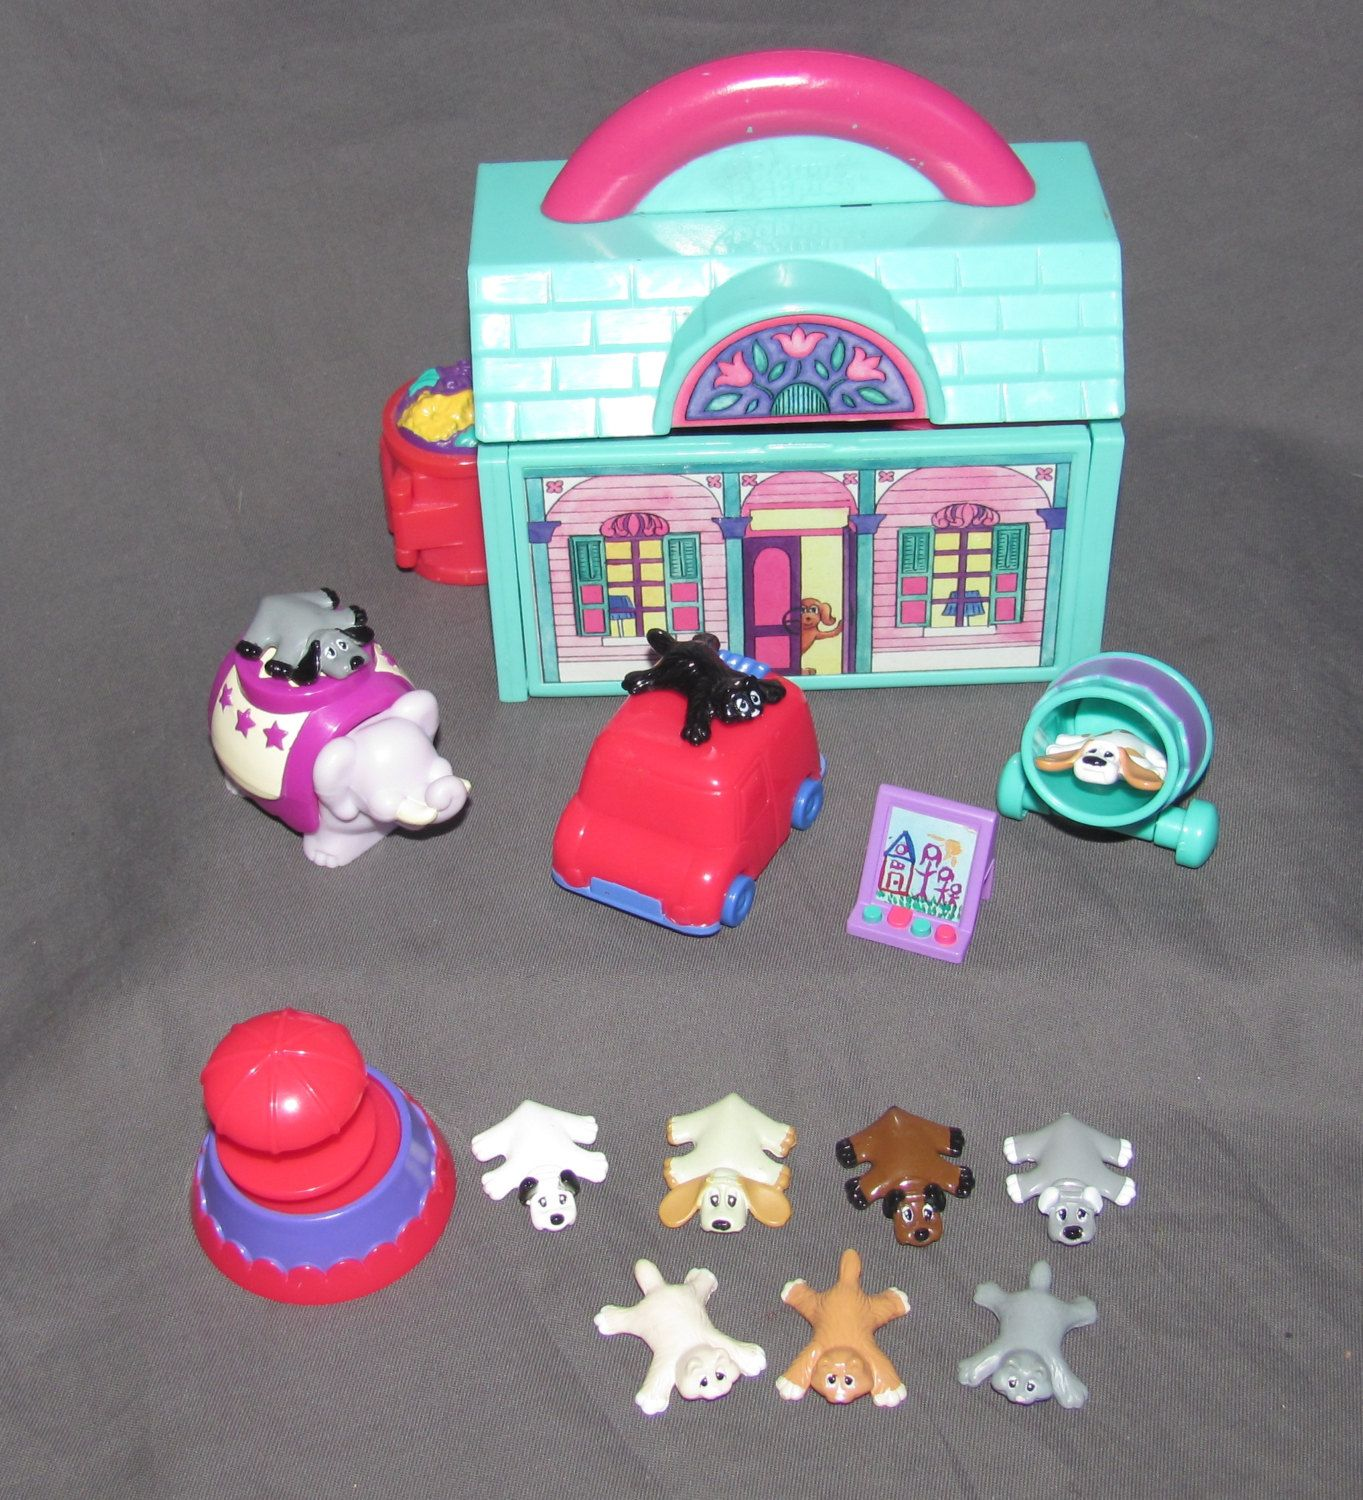 Vintage Pound Puppies Playset Small Scale Like Polly Pockets